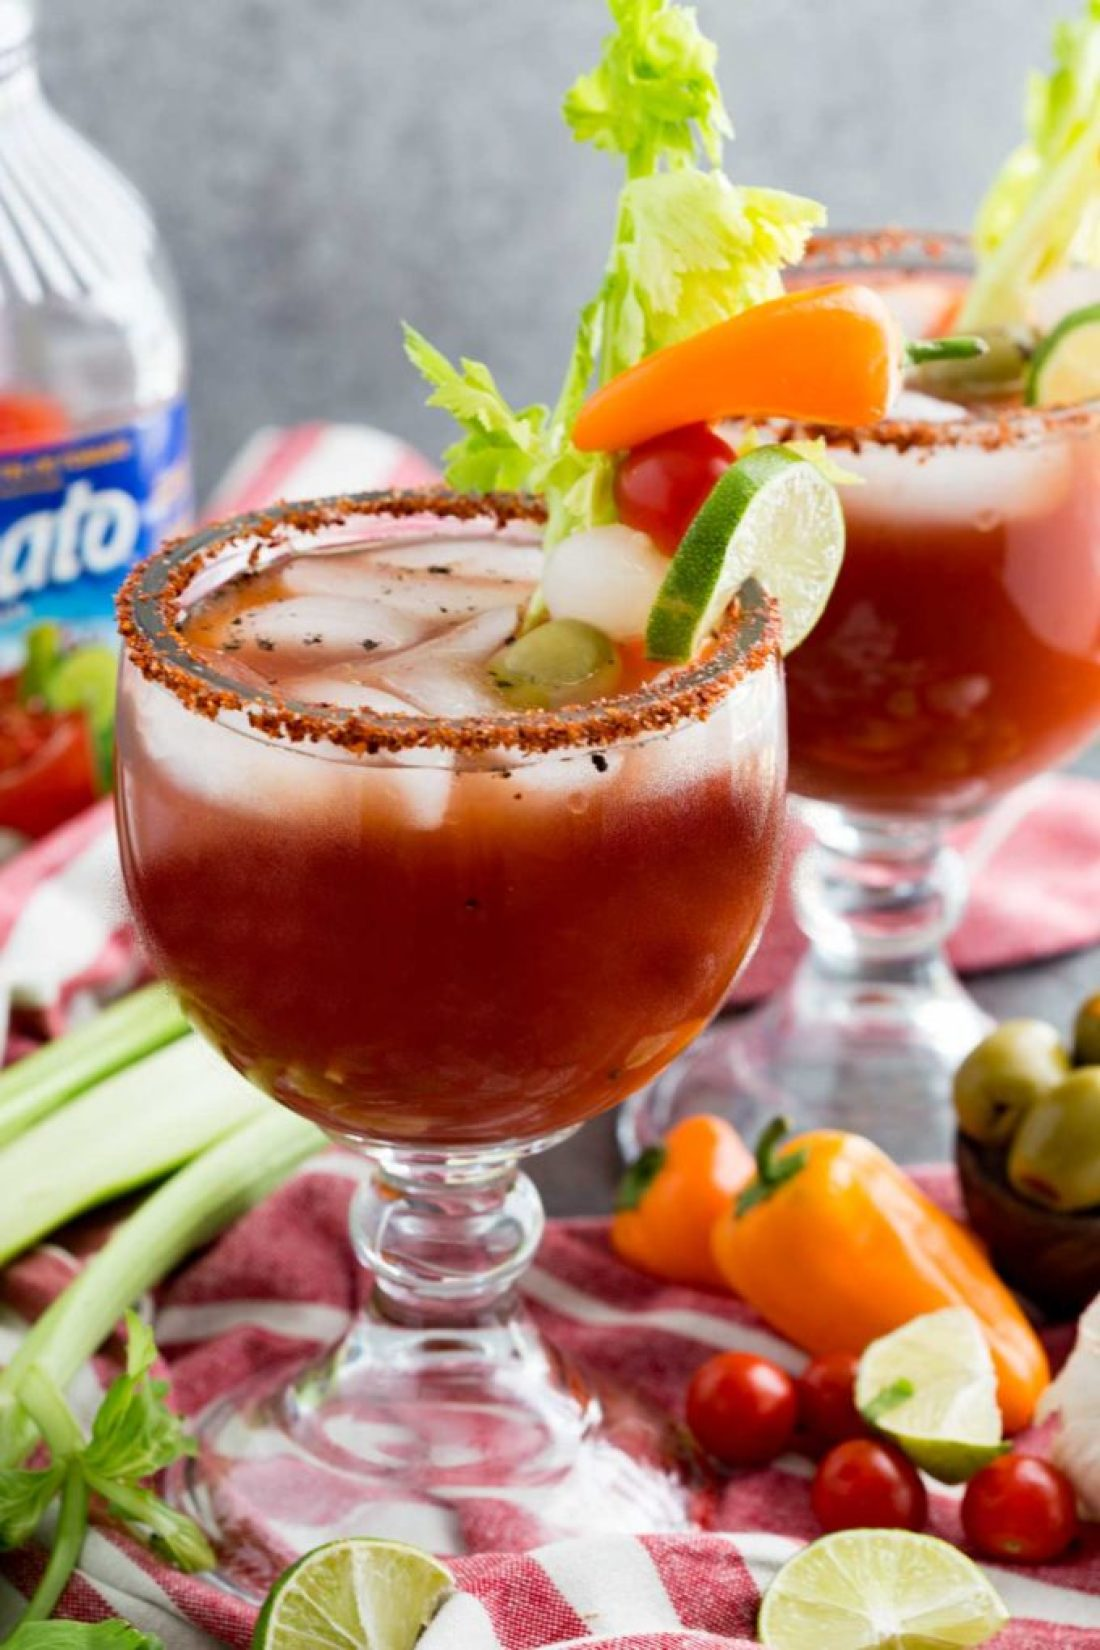 Michelada Ingredients: Or, not so bloody mary. This is a spicy tomato based mocktail with bold flavors, and a fun kick perfect for eating alfresco with friends!